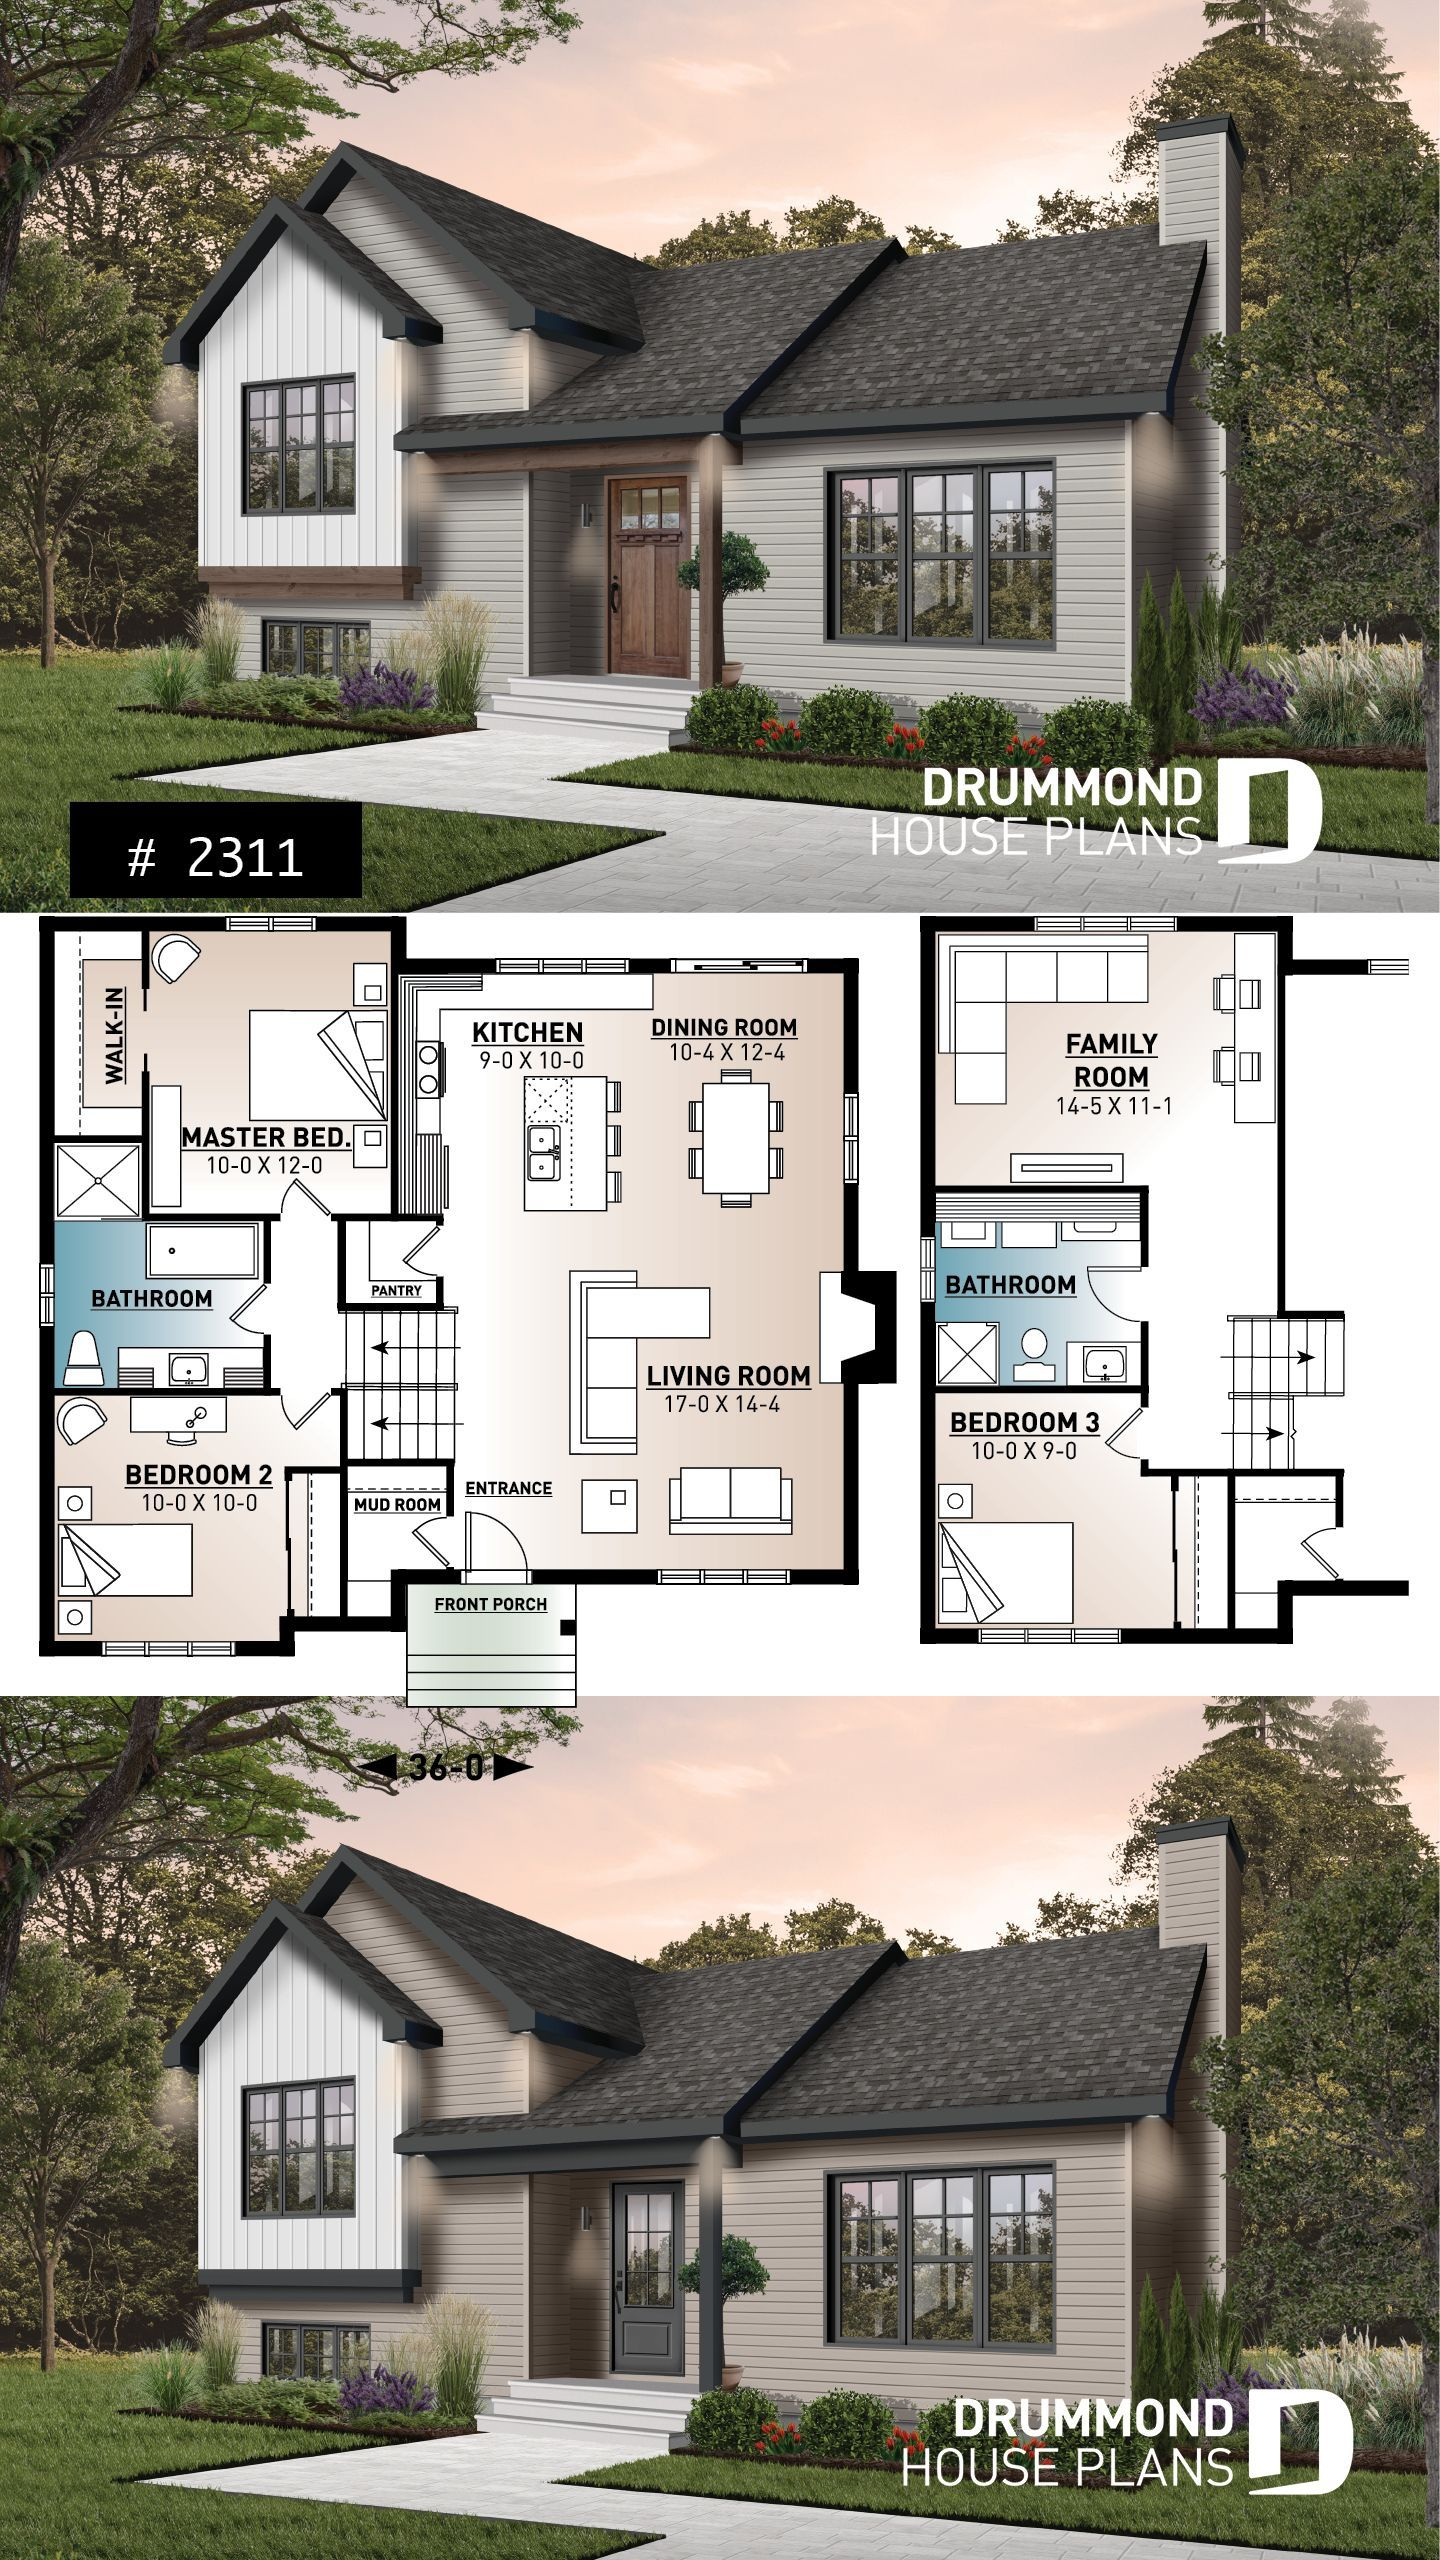 Small 3 Bedroom Farmhouse With Open Space Cathedral Ceiling Pantry Mud Room And Split Level Kitchen B Sims House Plans Split Level House Plans House Plans